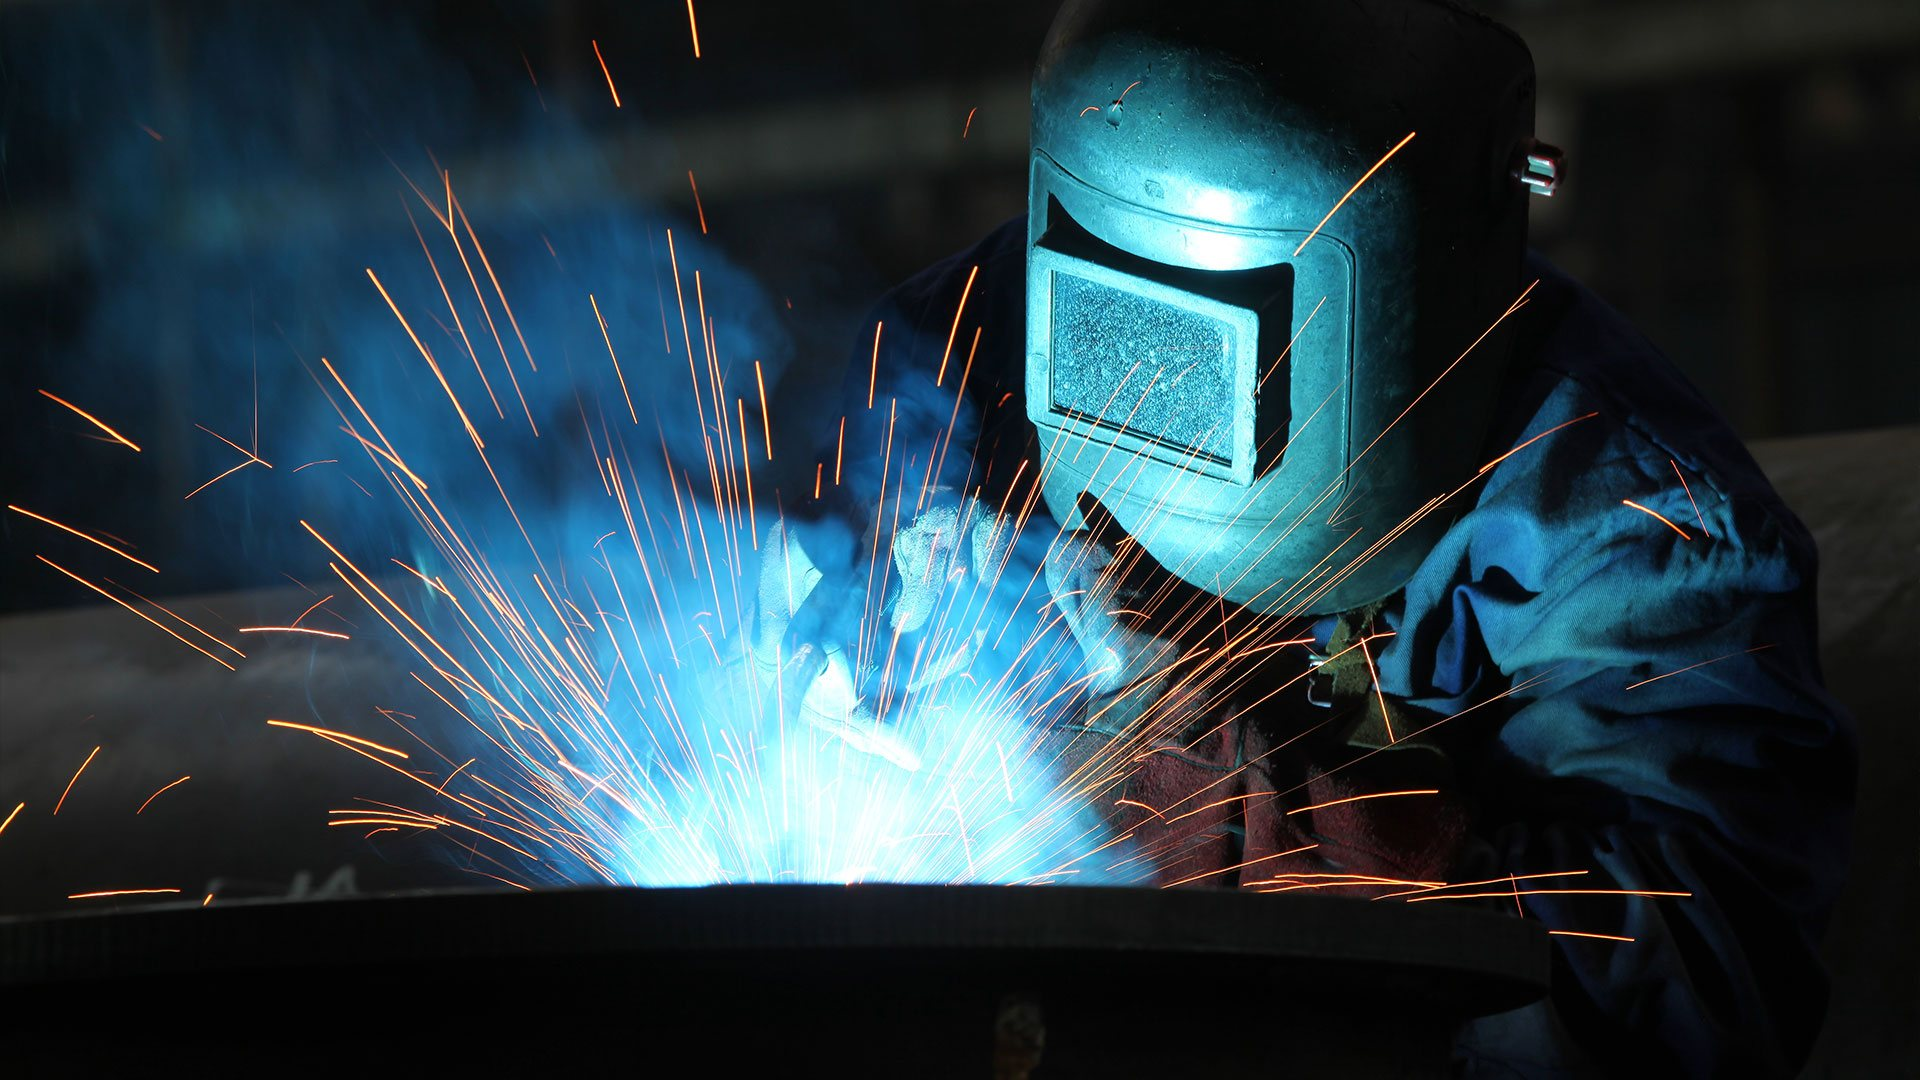 Pittsburgh Plasma Cutting Systems, Compressed Air Filters and Automated Plasma Cutting